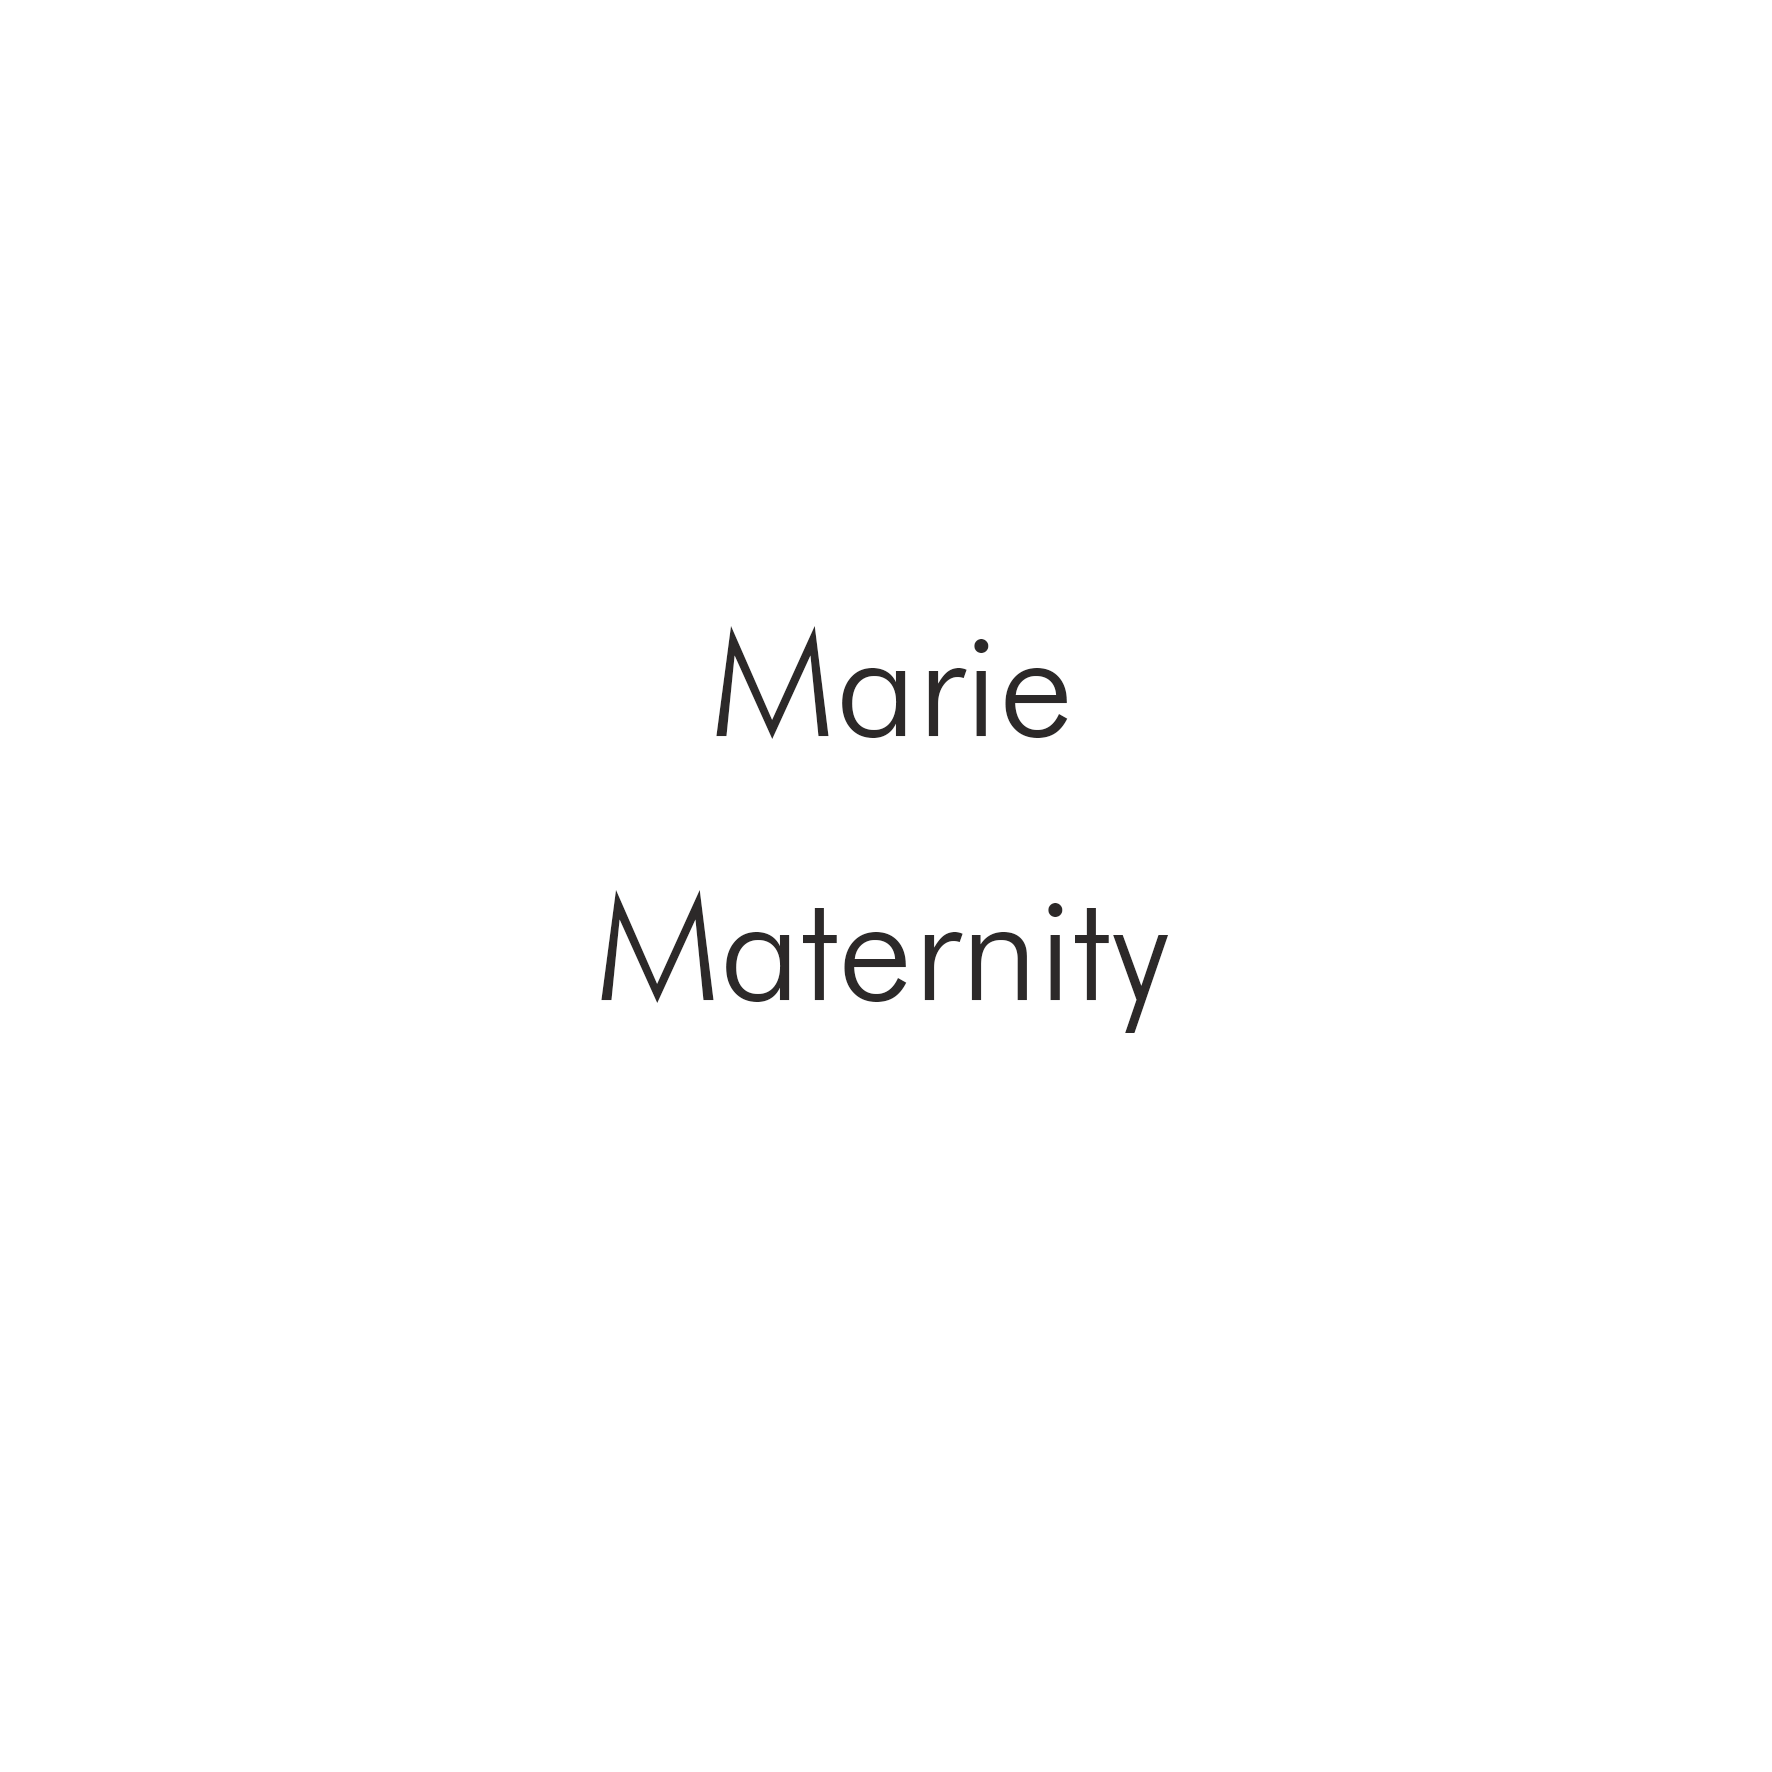 Marie Maternity.png